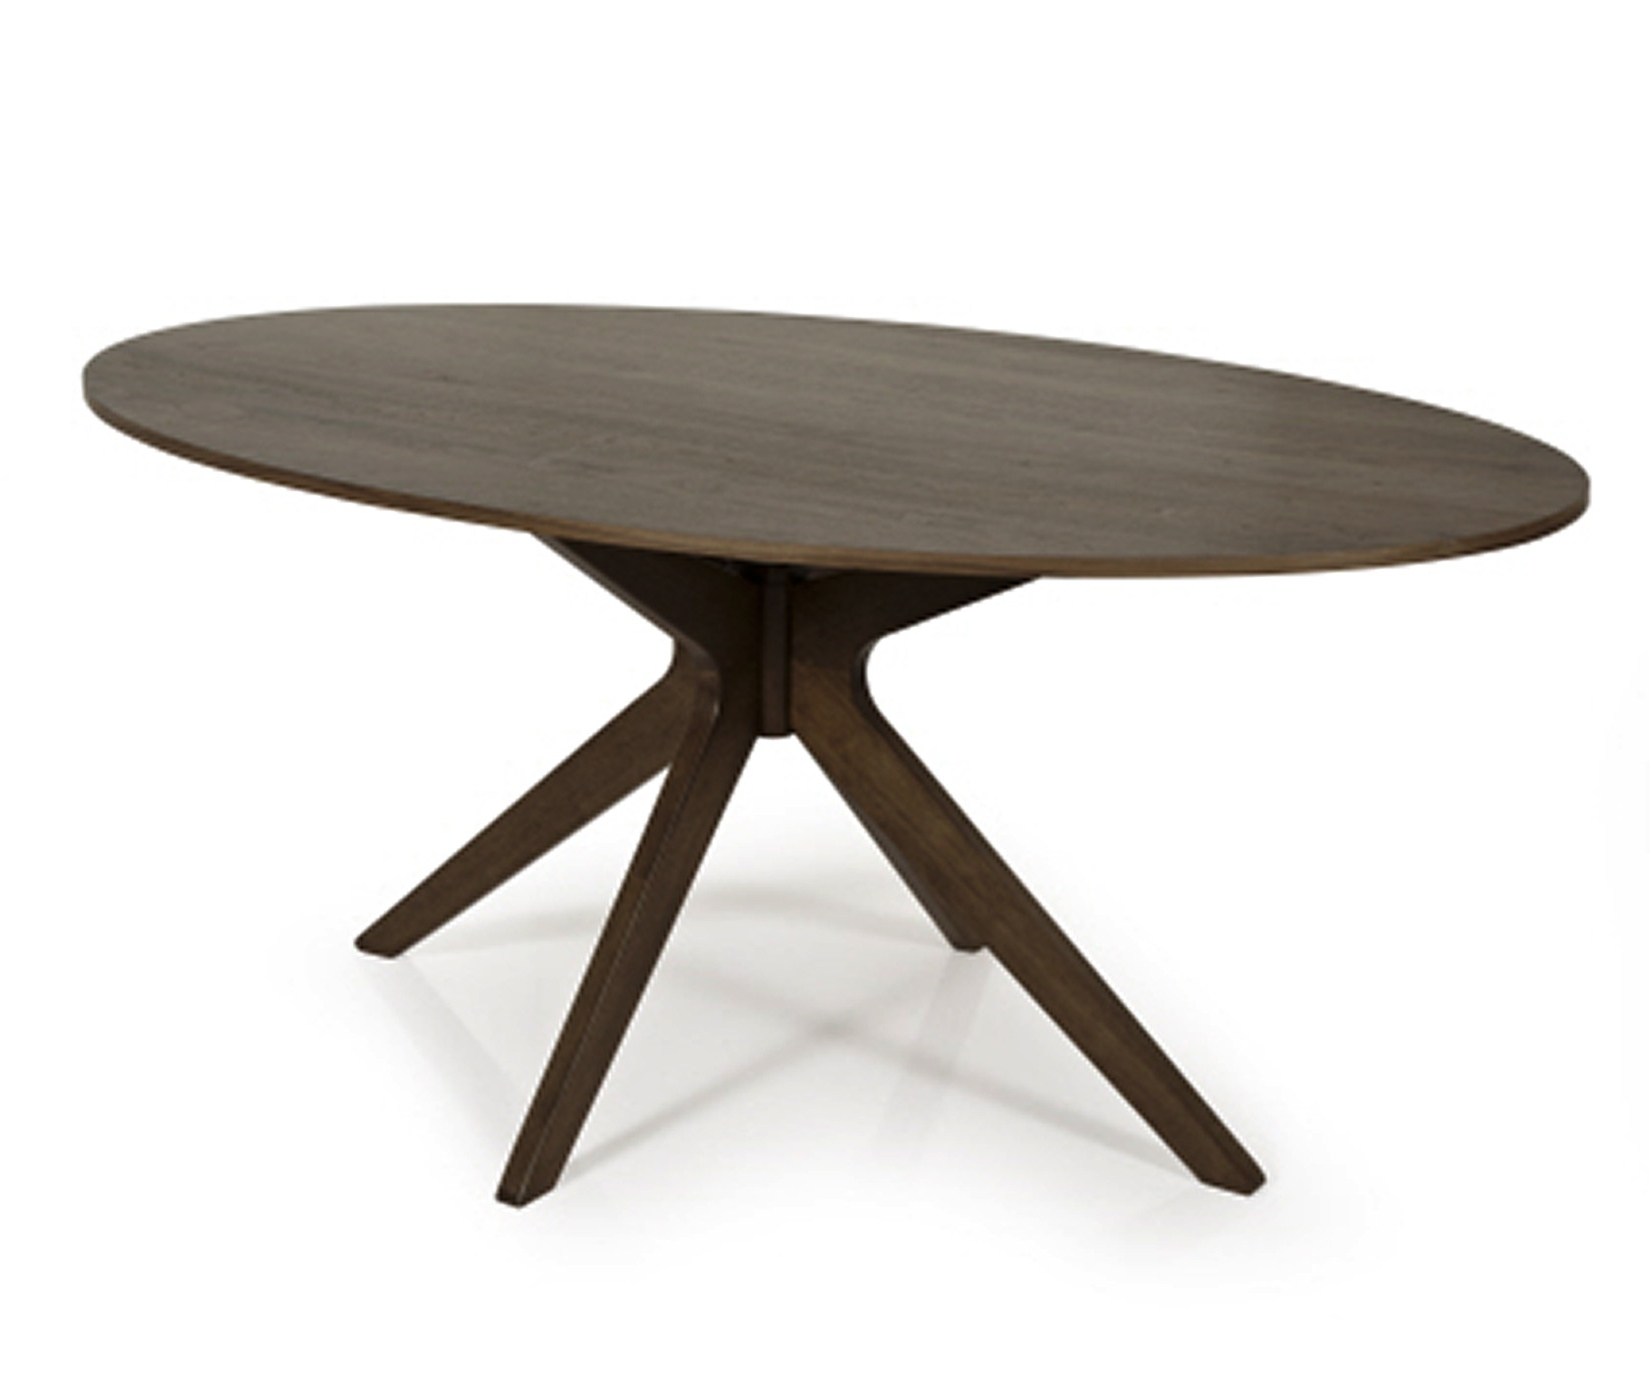 Buy Extending Oval Dining Tables – Furniture Direct Uk With Trendy Oval Dining Tables For Sale (View 9 of 25)